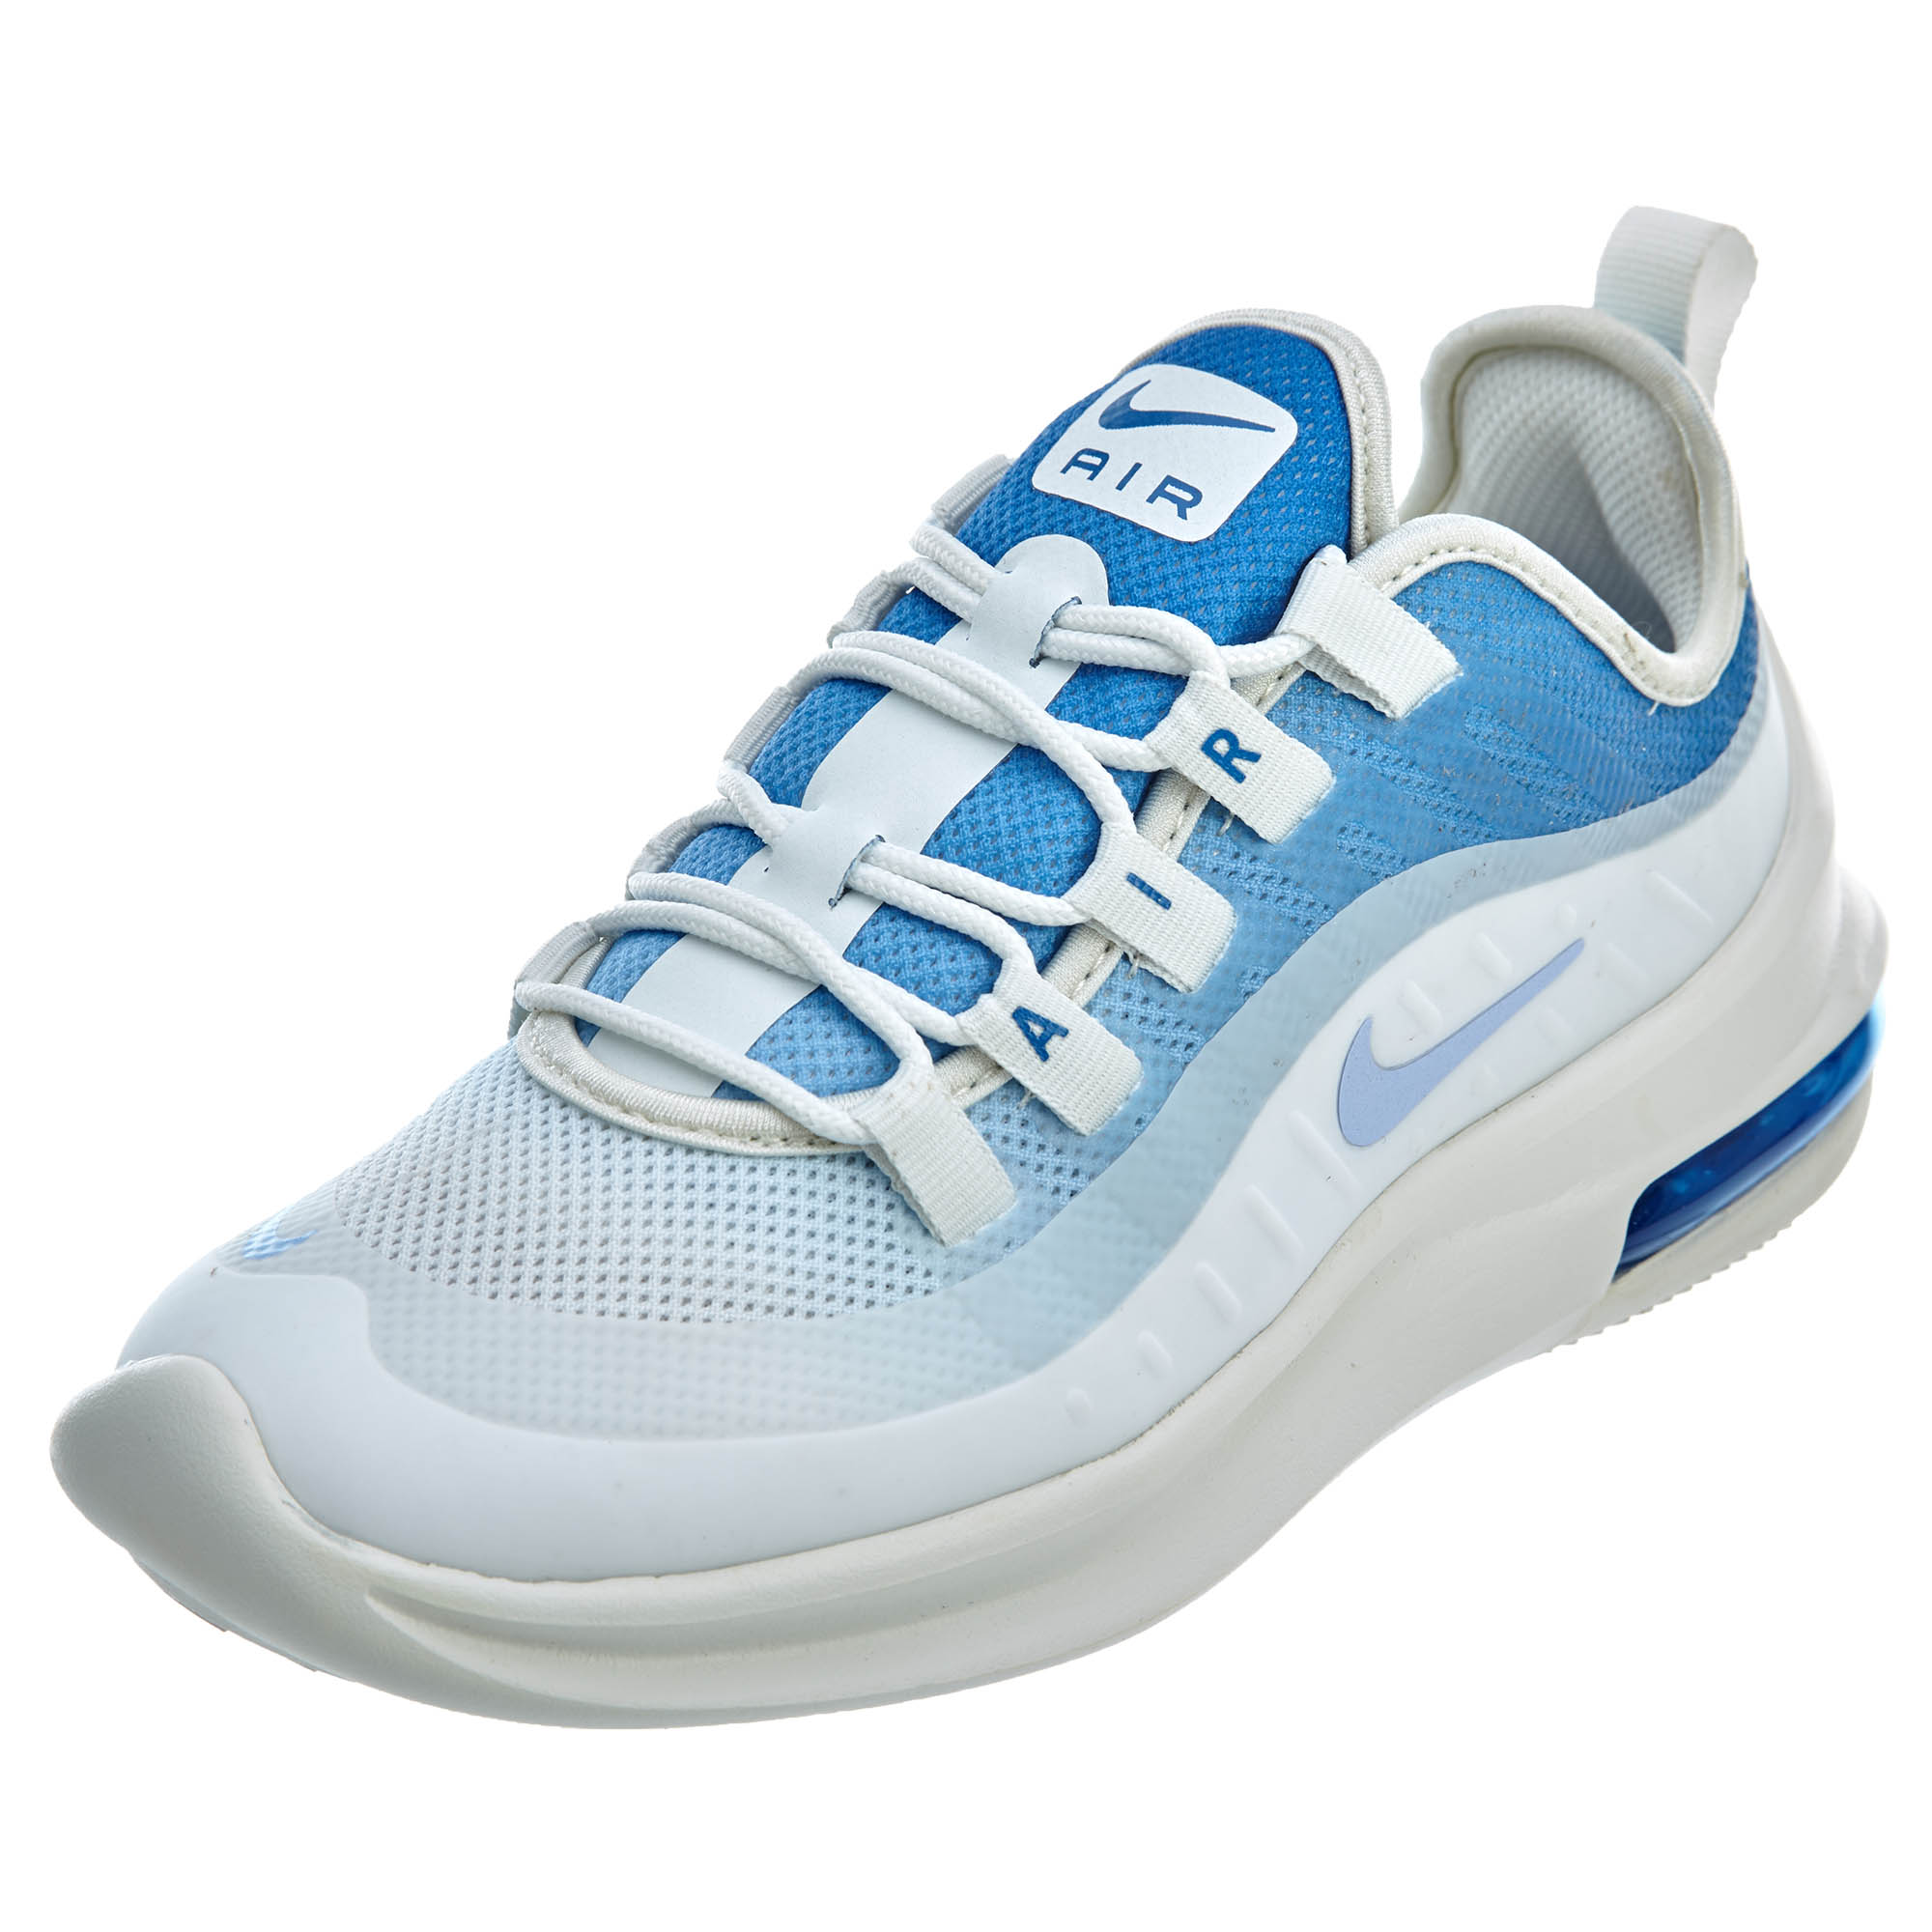 b692faece02 Details about Nike Womens Air Max Axis Se Running Shoes AA2167-101